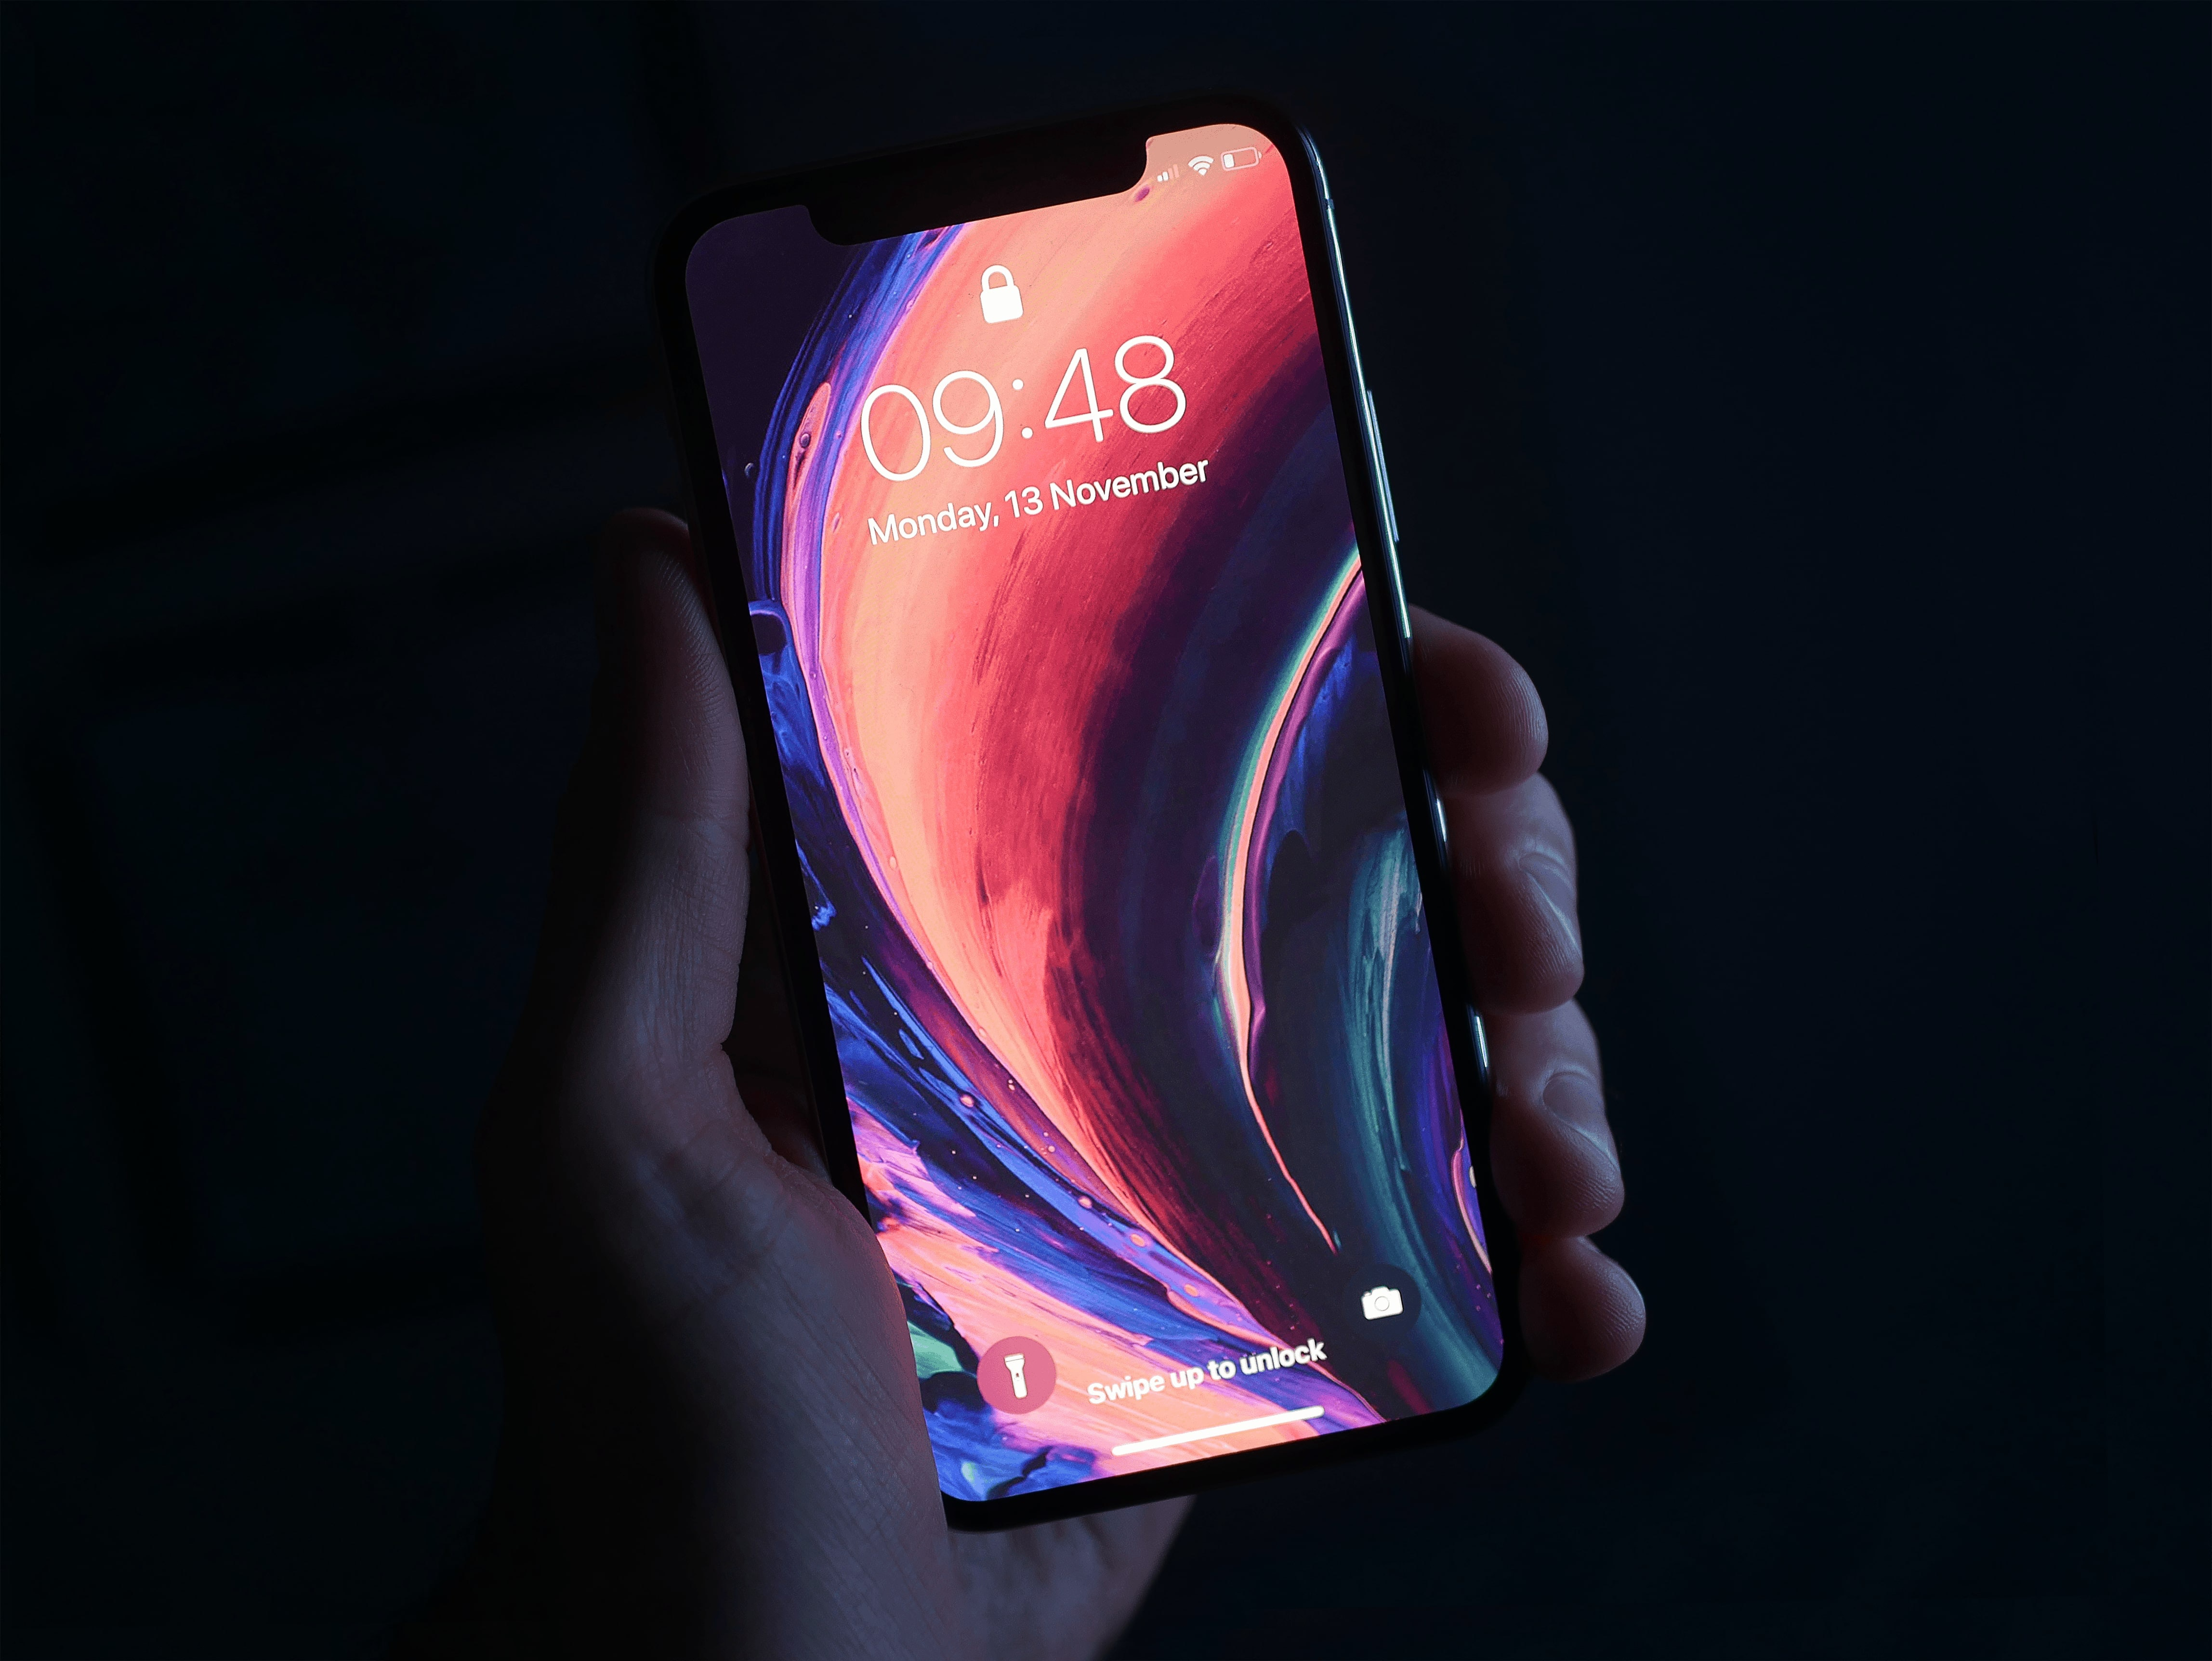 person holding space gray iPhone X